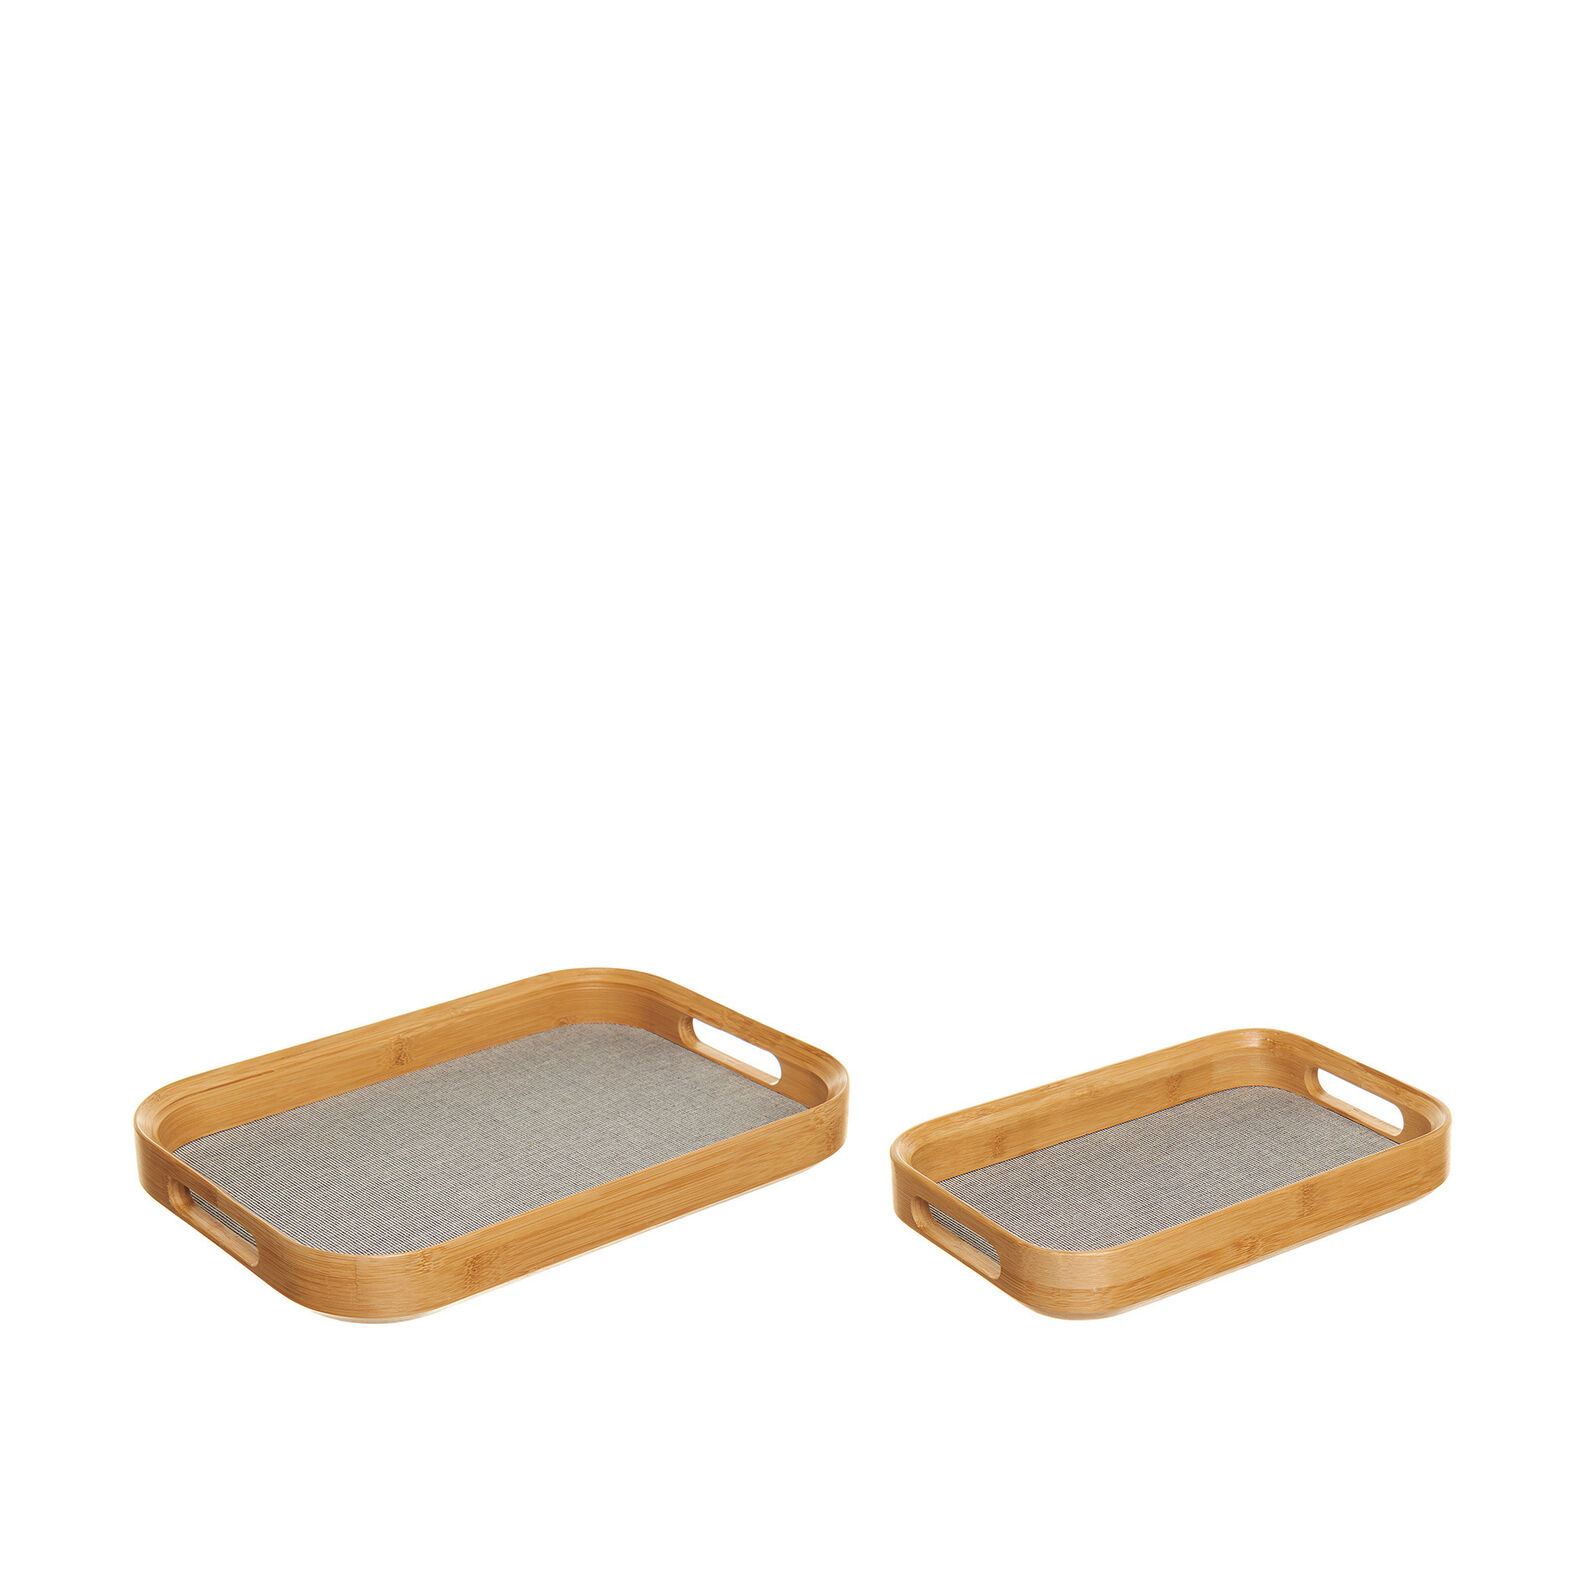 Rectangular tray in cotton and bamboo